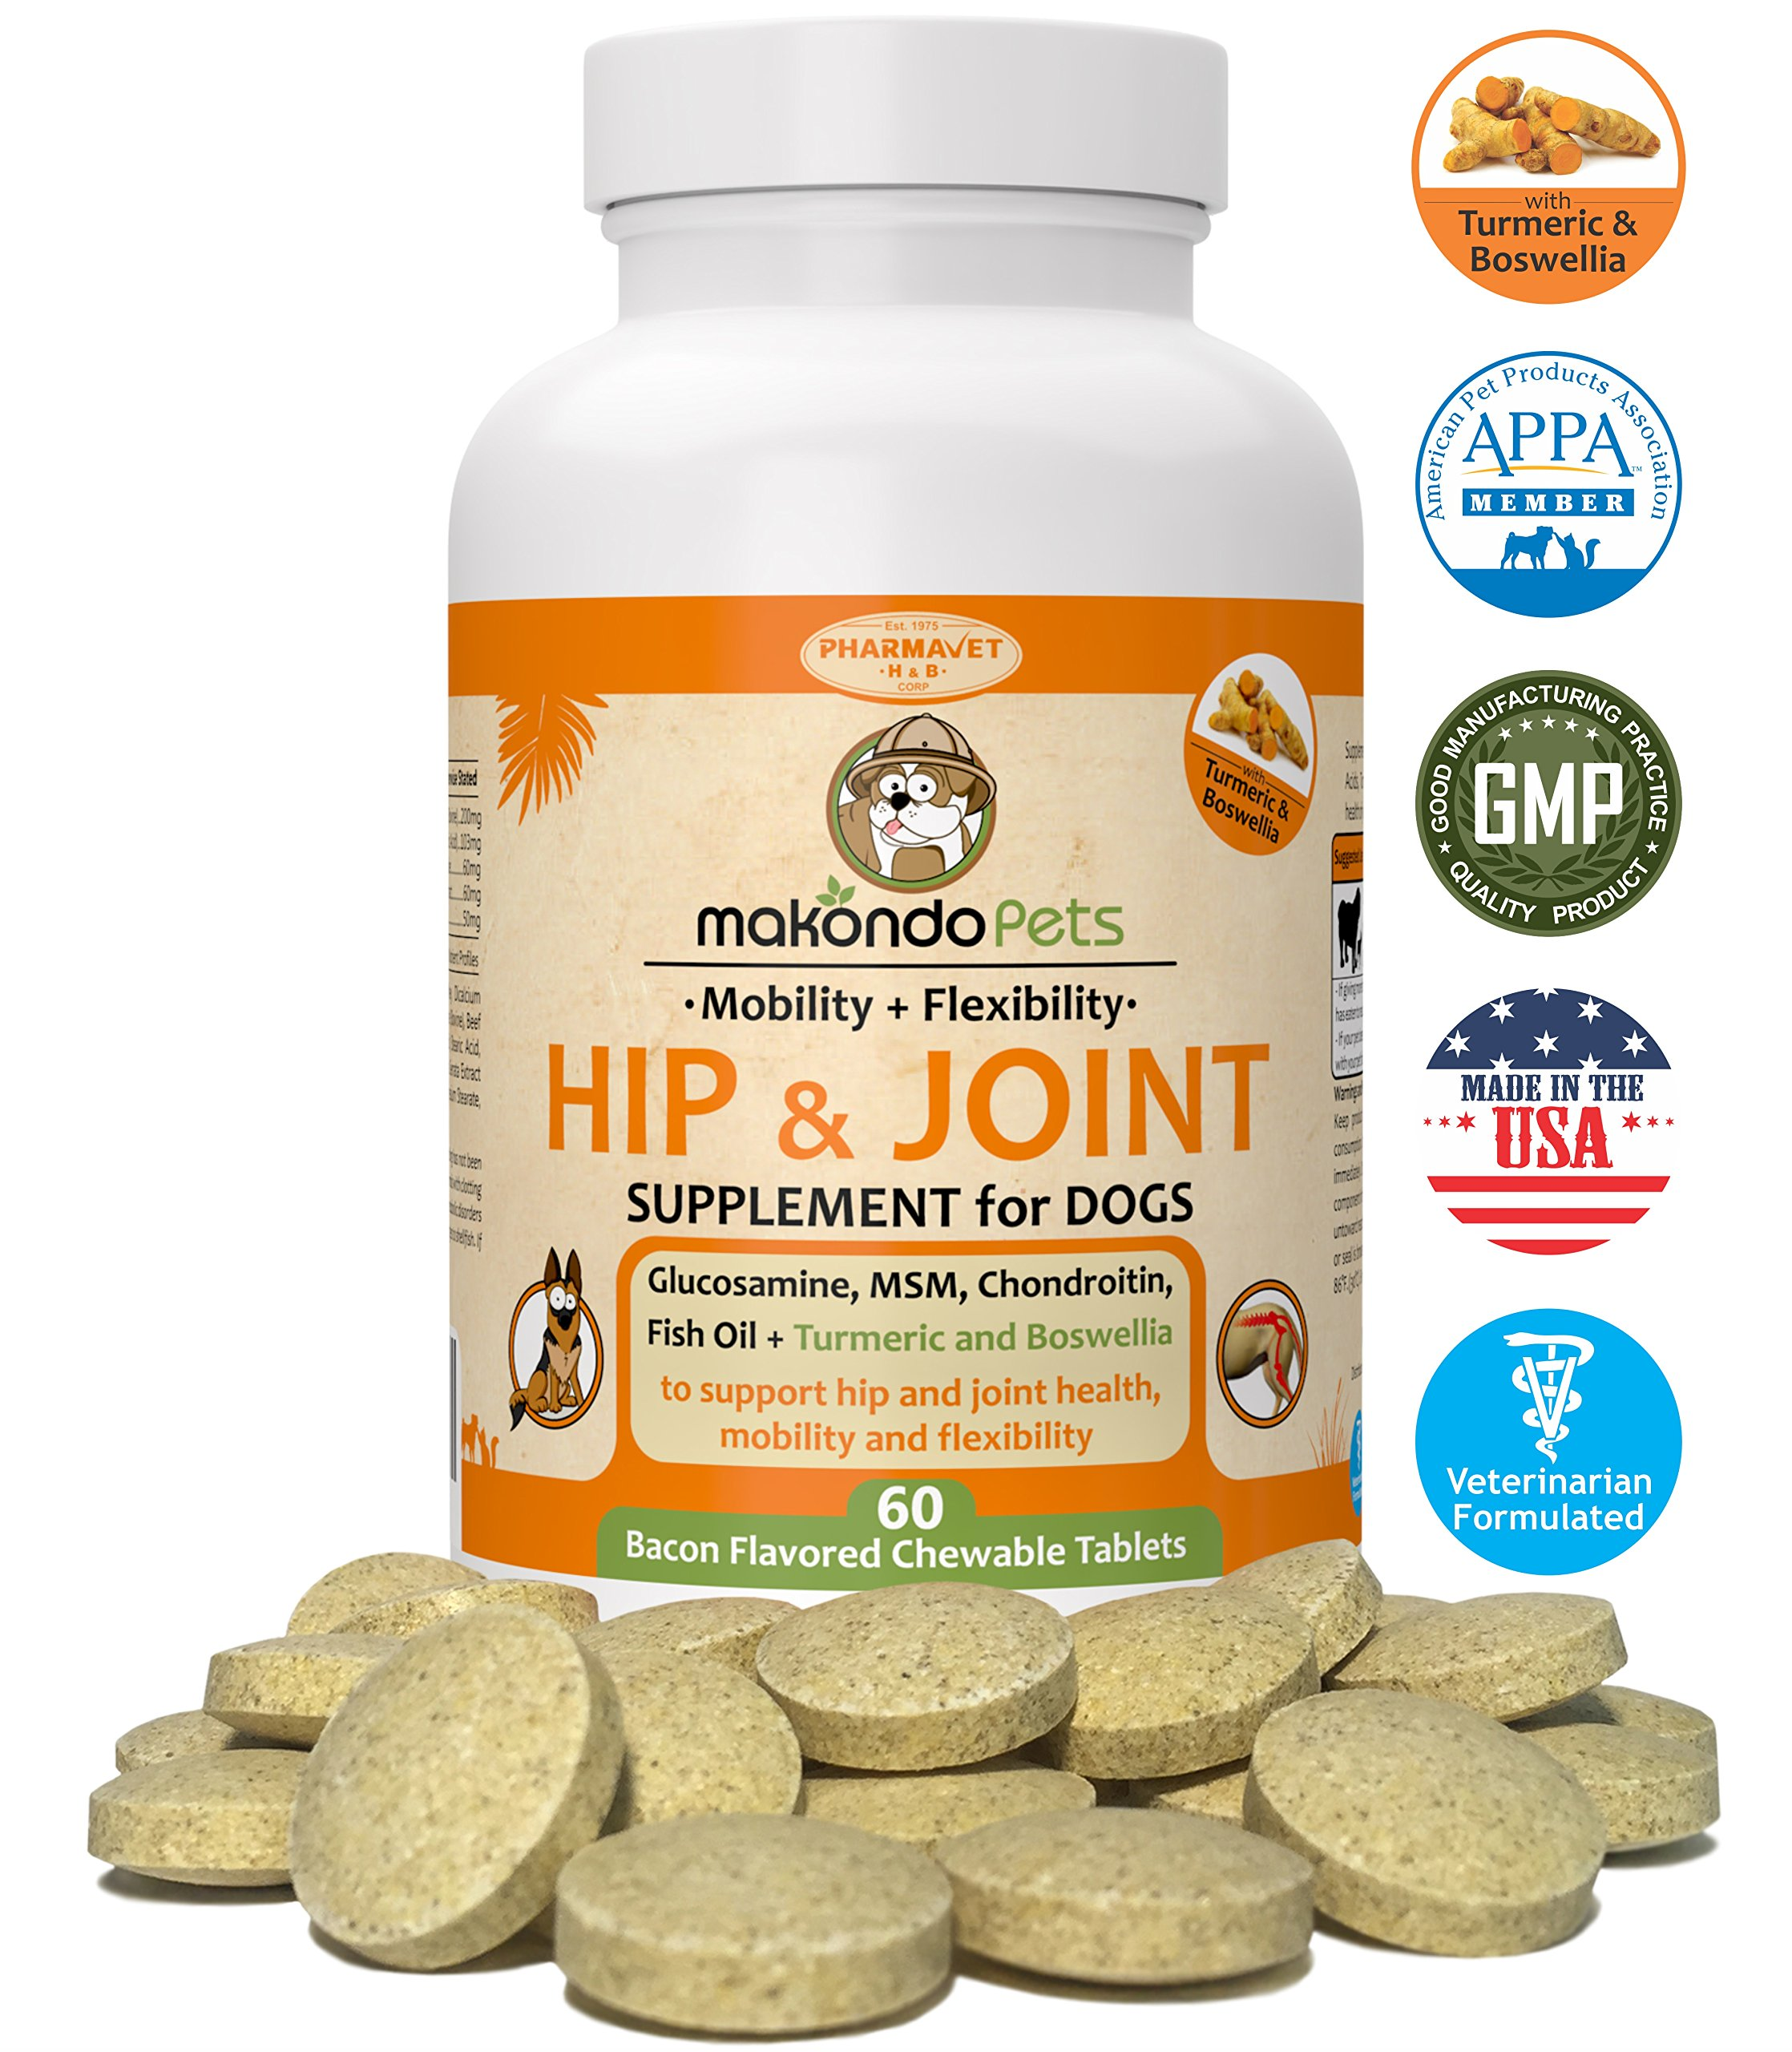 Makondo Pets Hip and Joint Supplement with Glucosamine for Dogs, Turmeric, Chondroitin, MSM, Vitamins, Fish Oil and Natural Boswellia - Get the Best Joint Supplement for Dogs